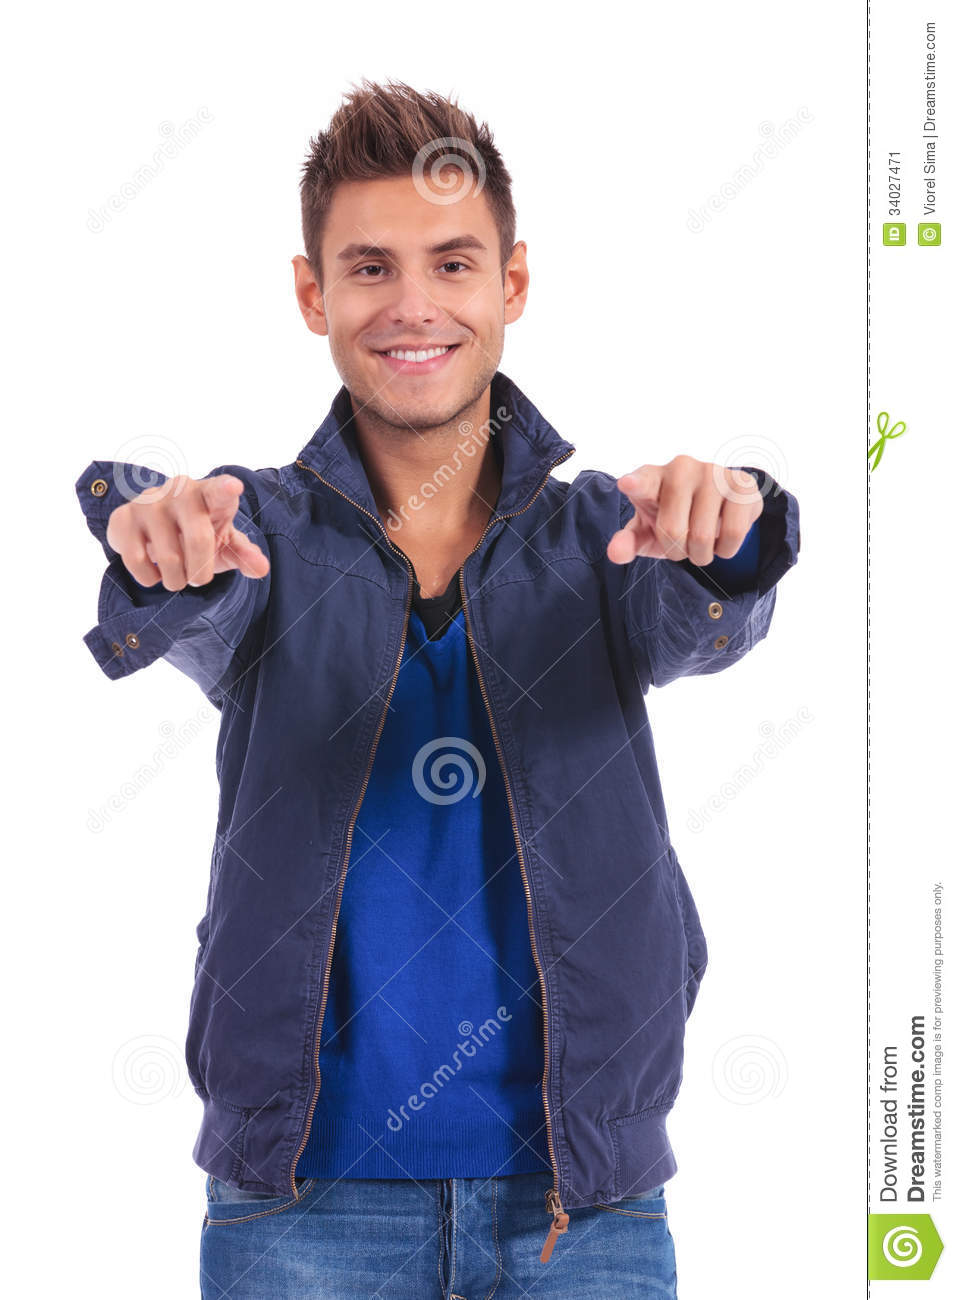 Casual man in jacket pointing his fingers to the camera